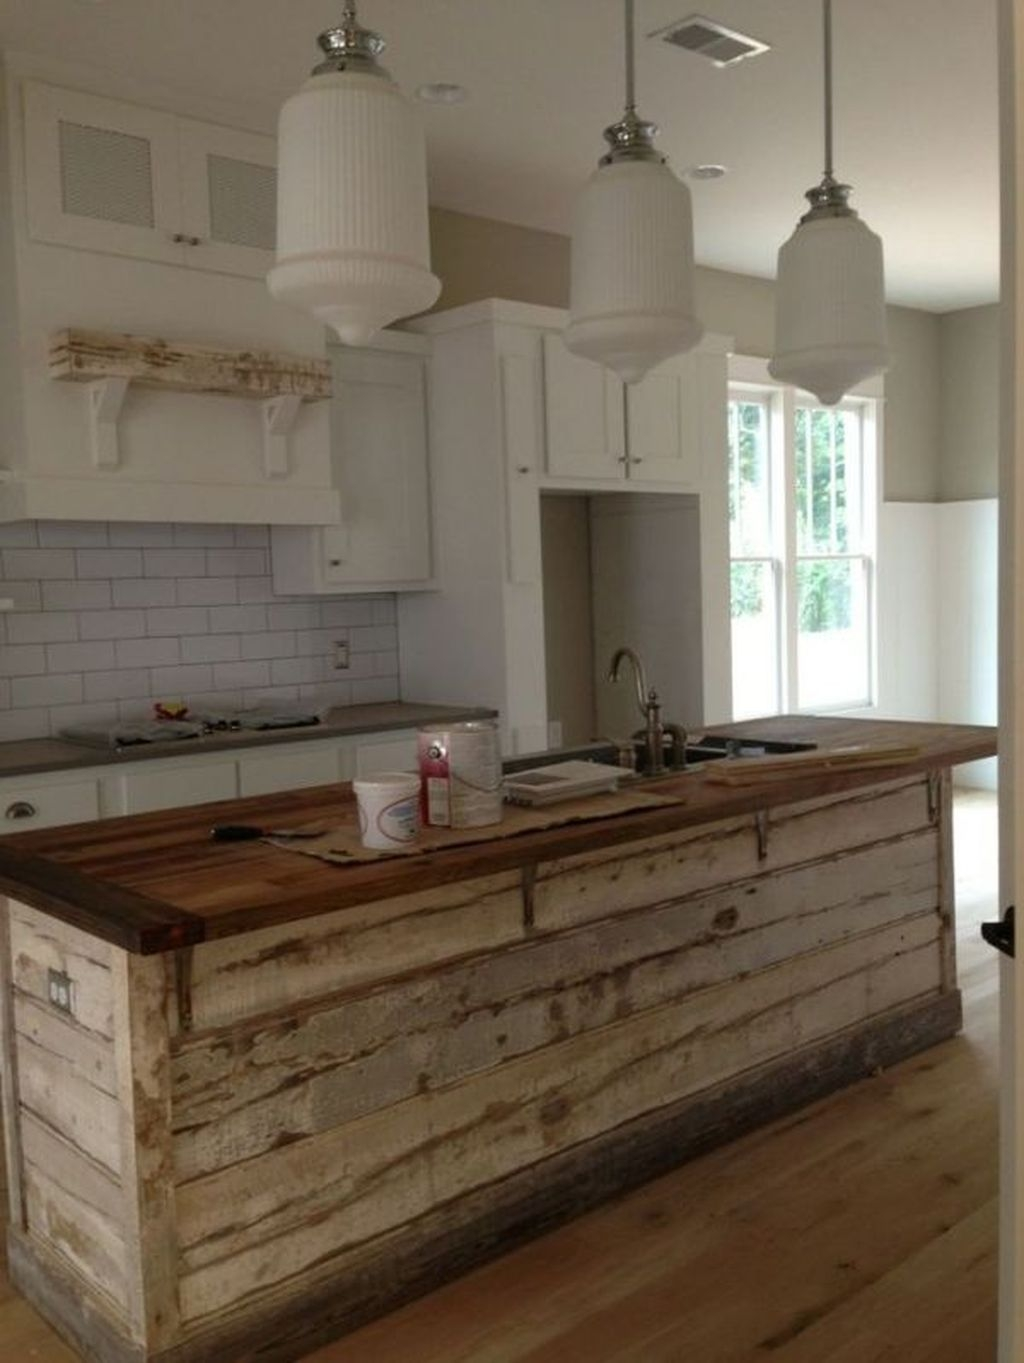 Awesome Rustic Kitchen Island Design Ideas 27